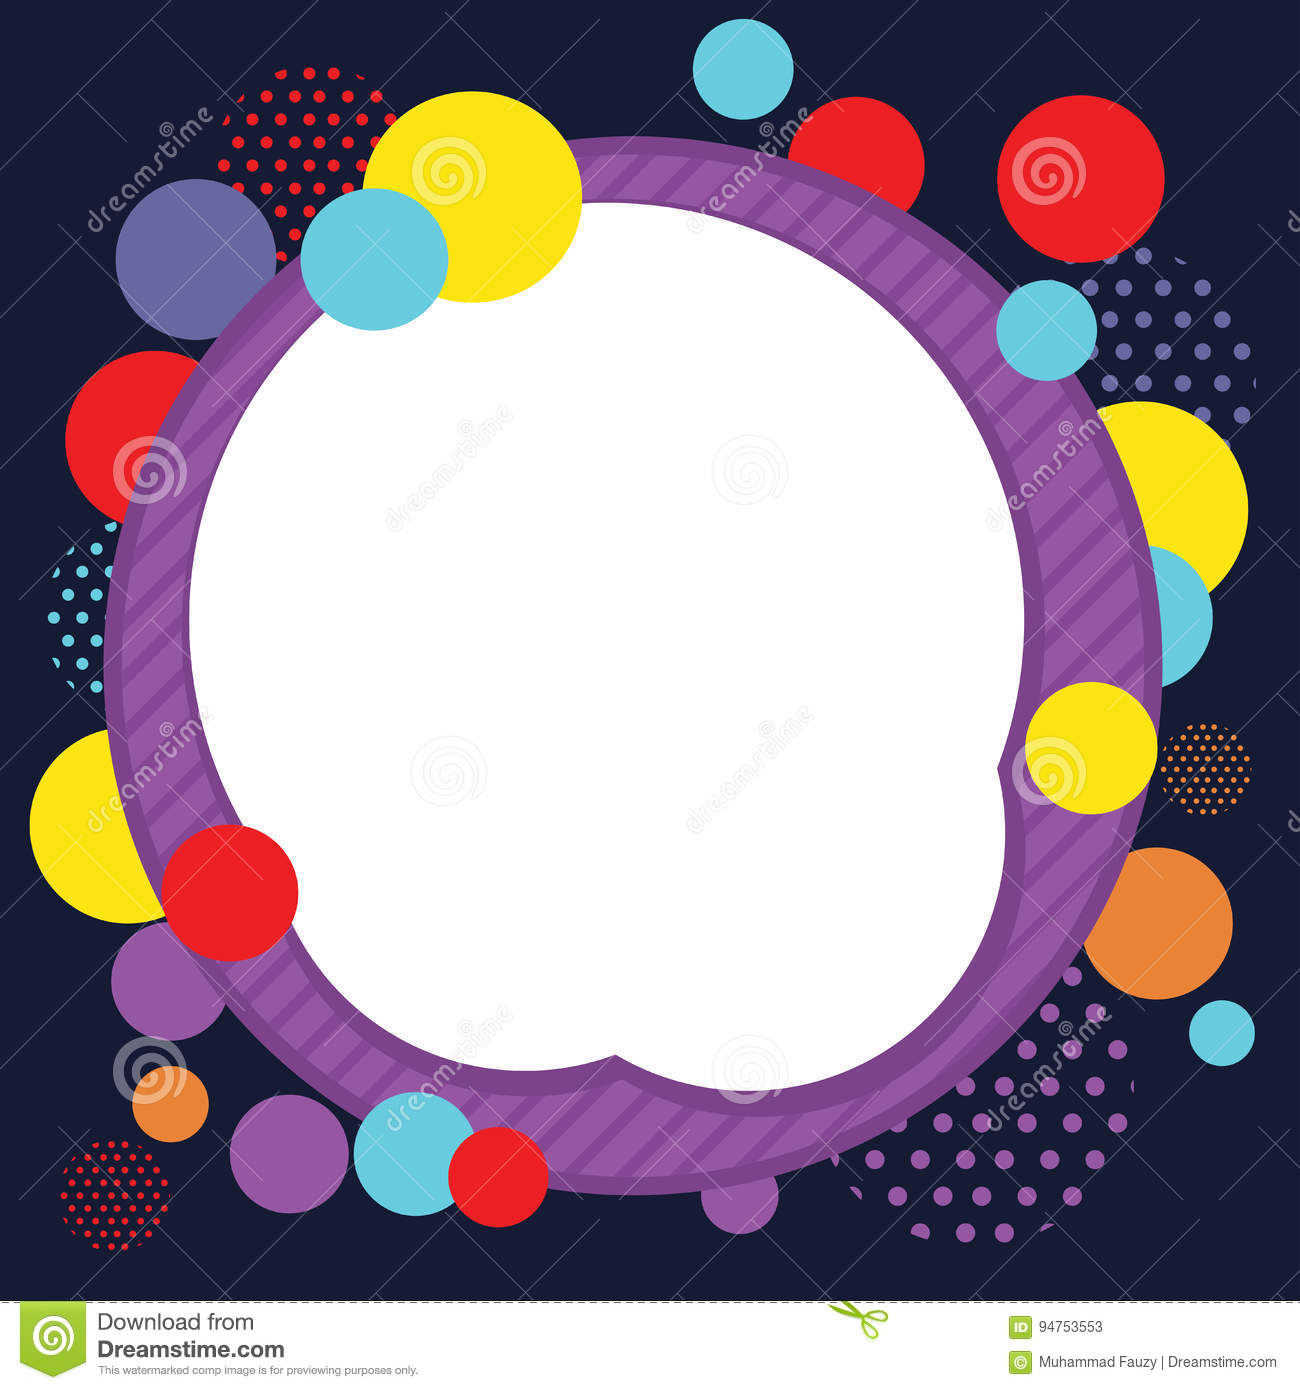 Circle Abstract Frame Background